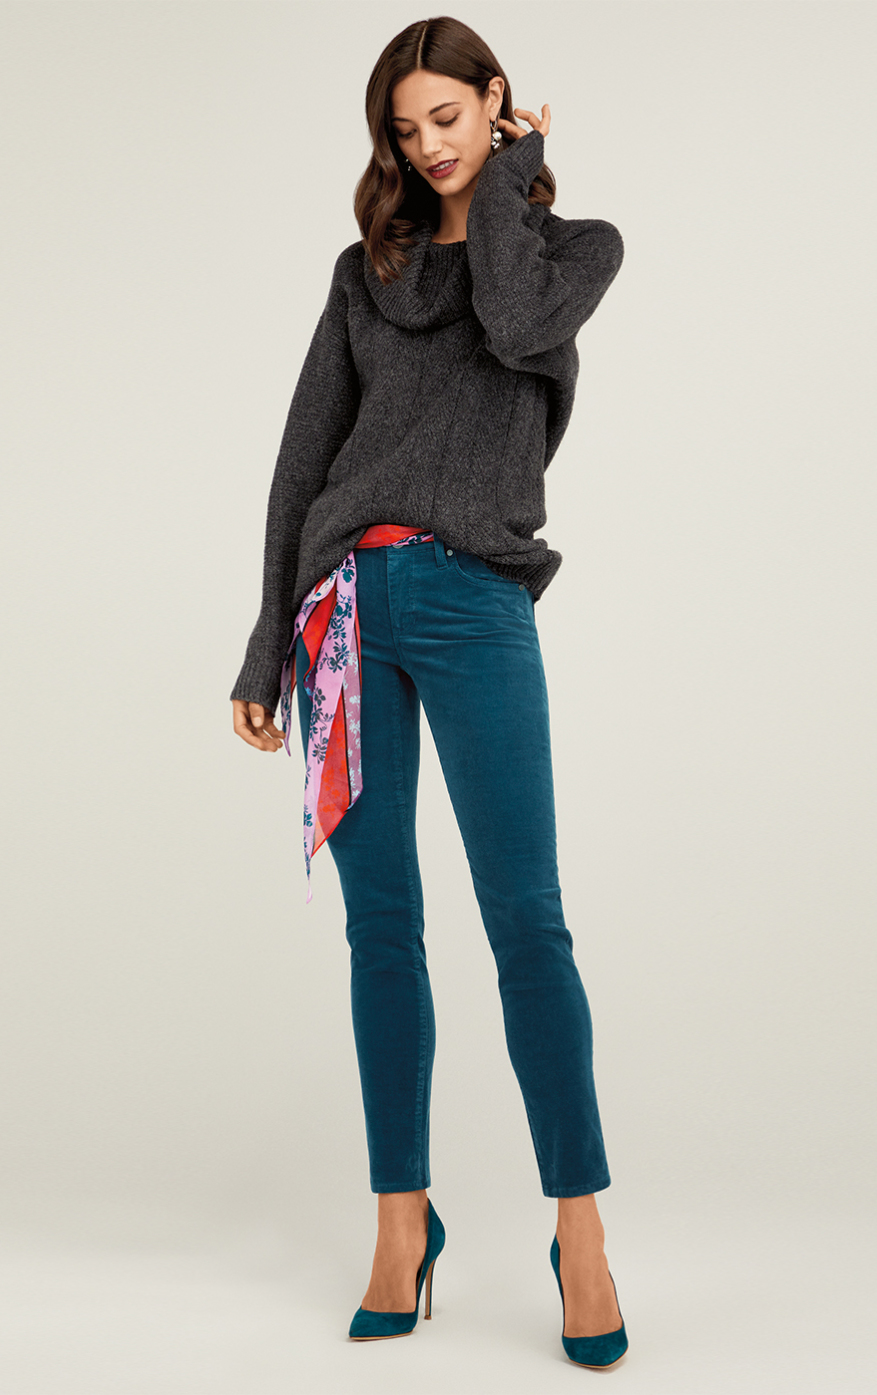 Campfire Pullover in Charcoal, High Skinny in Moroccan Blue